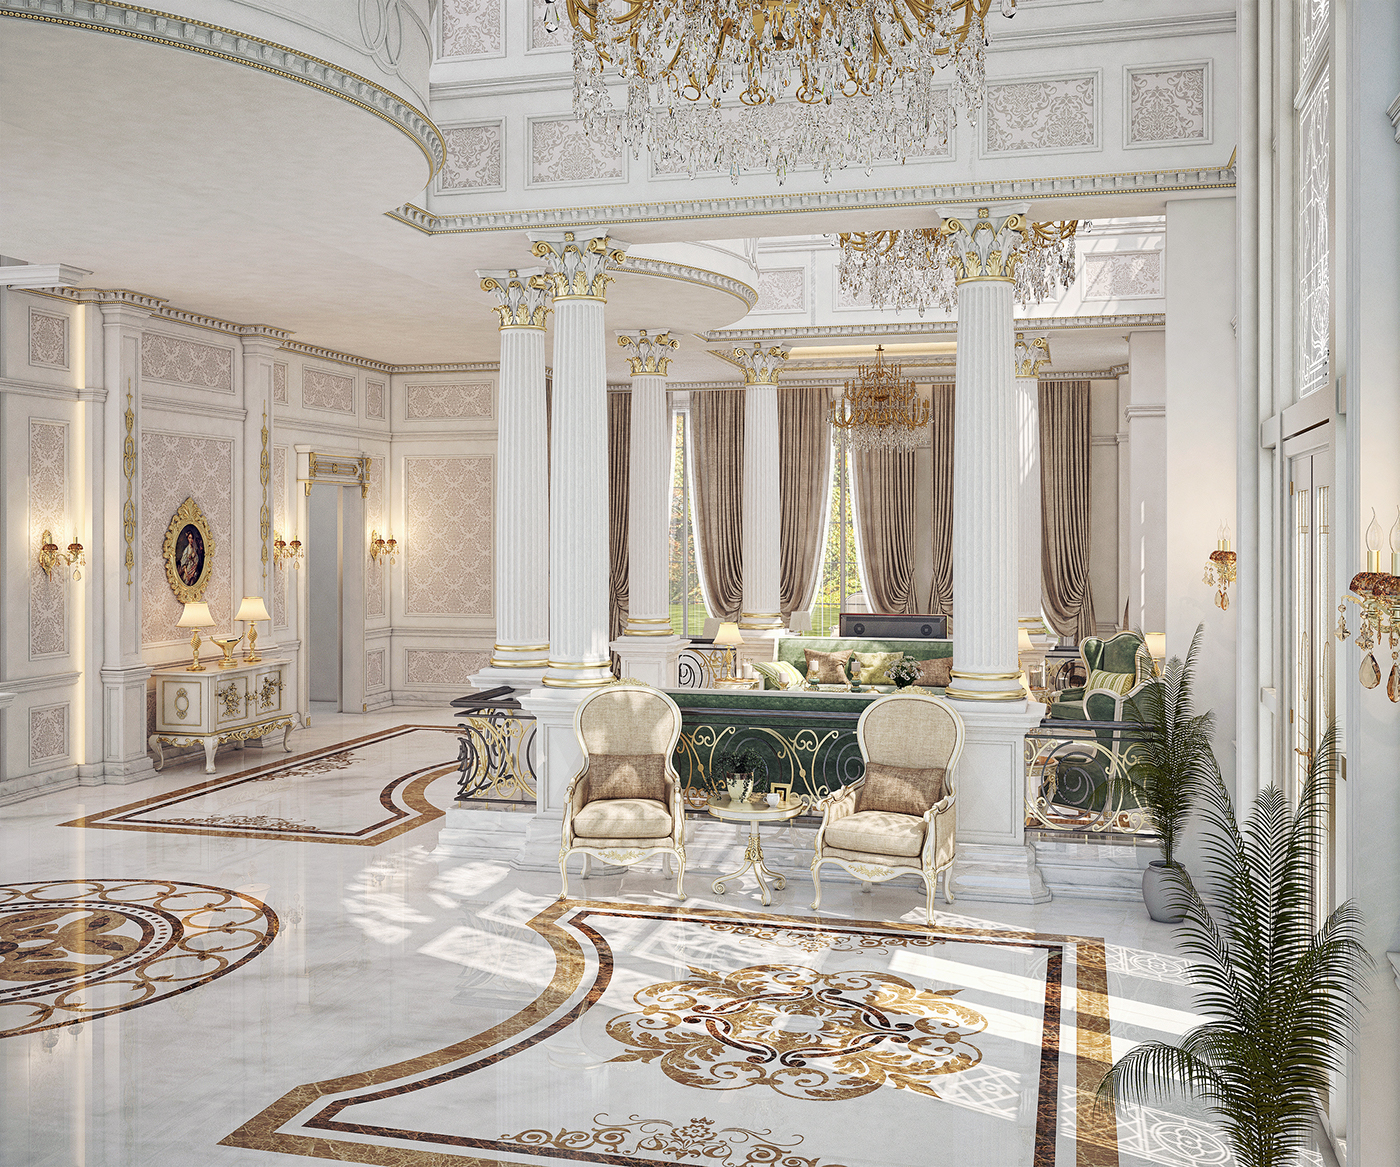 New Home Designs Latest Luxury Homes Interior Decoration: Main Entrance Hall Design For A Private Villa At Doha On